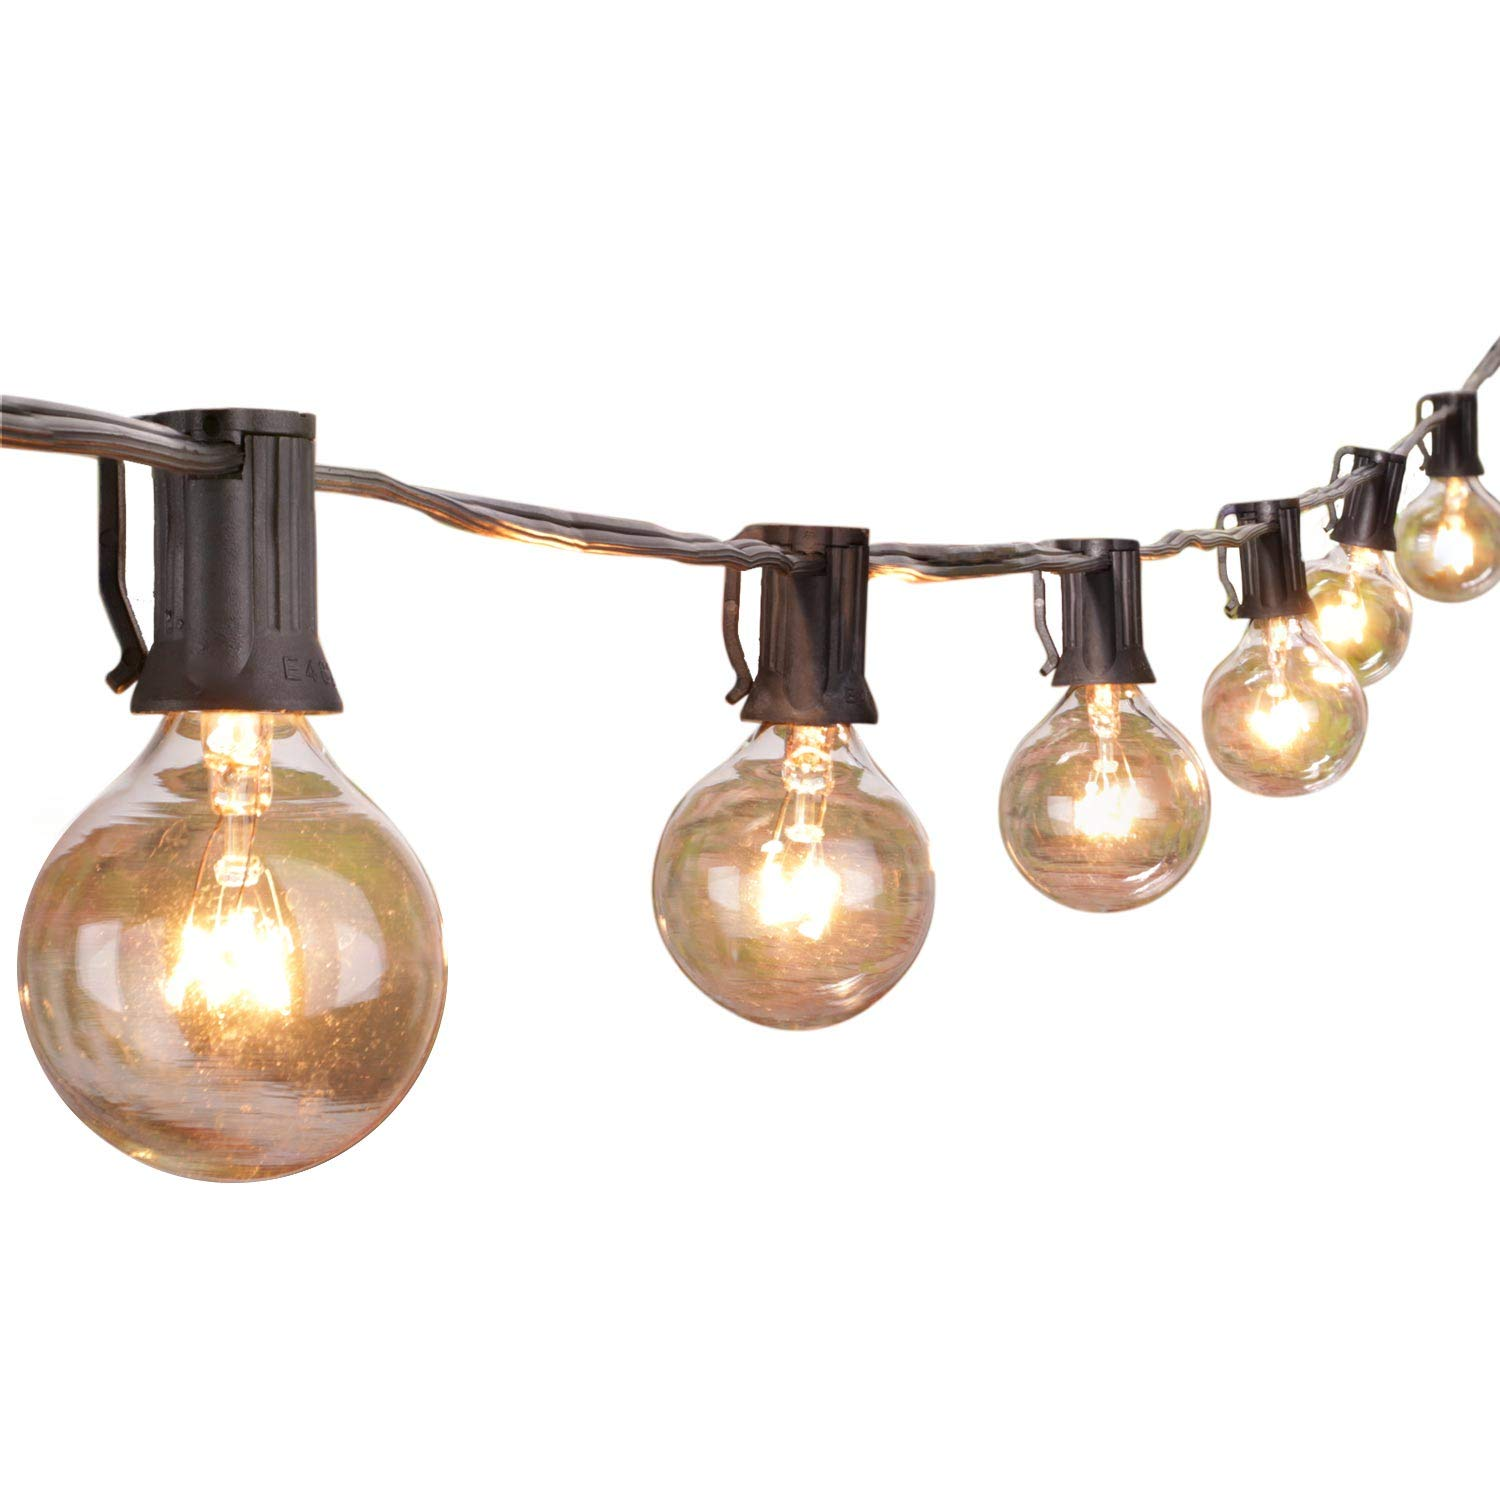 100Ft G40 Globe String Lights with Clear Bulbs-UL Listed for Indoor/Outdoor Commercial Use